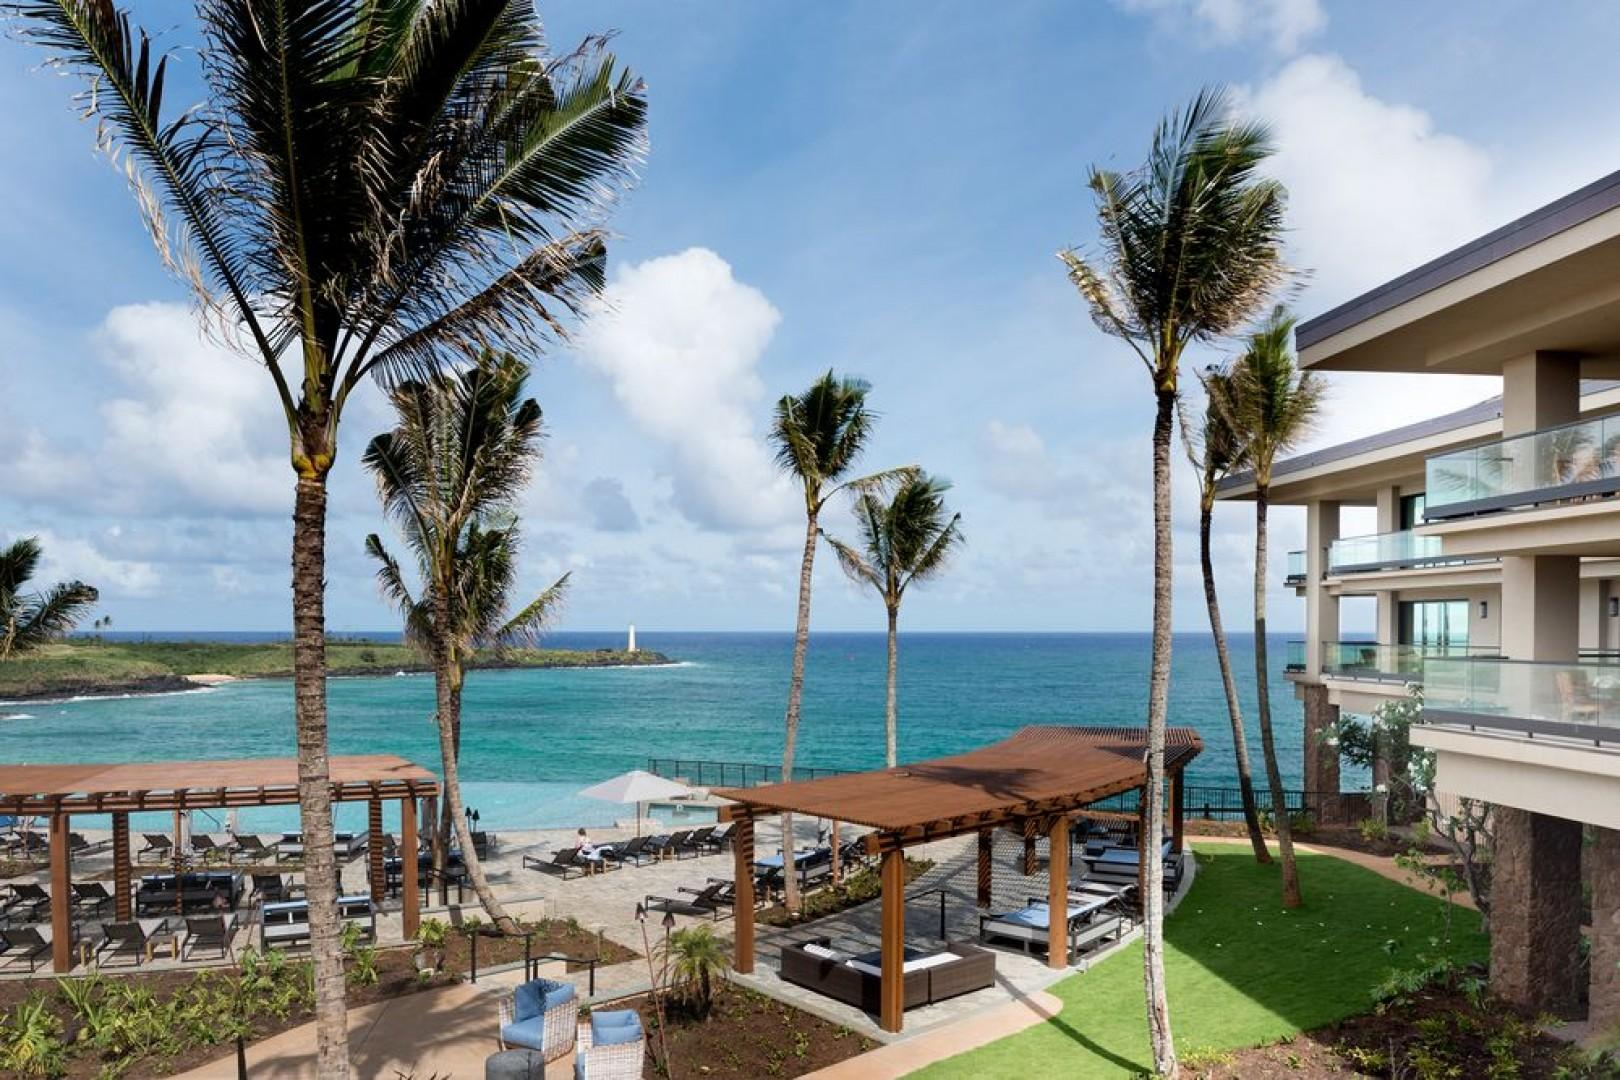 The grounds at Hokuala offer an unparalleled luxury Hawaiian vacation experience.